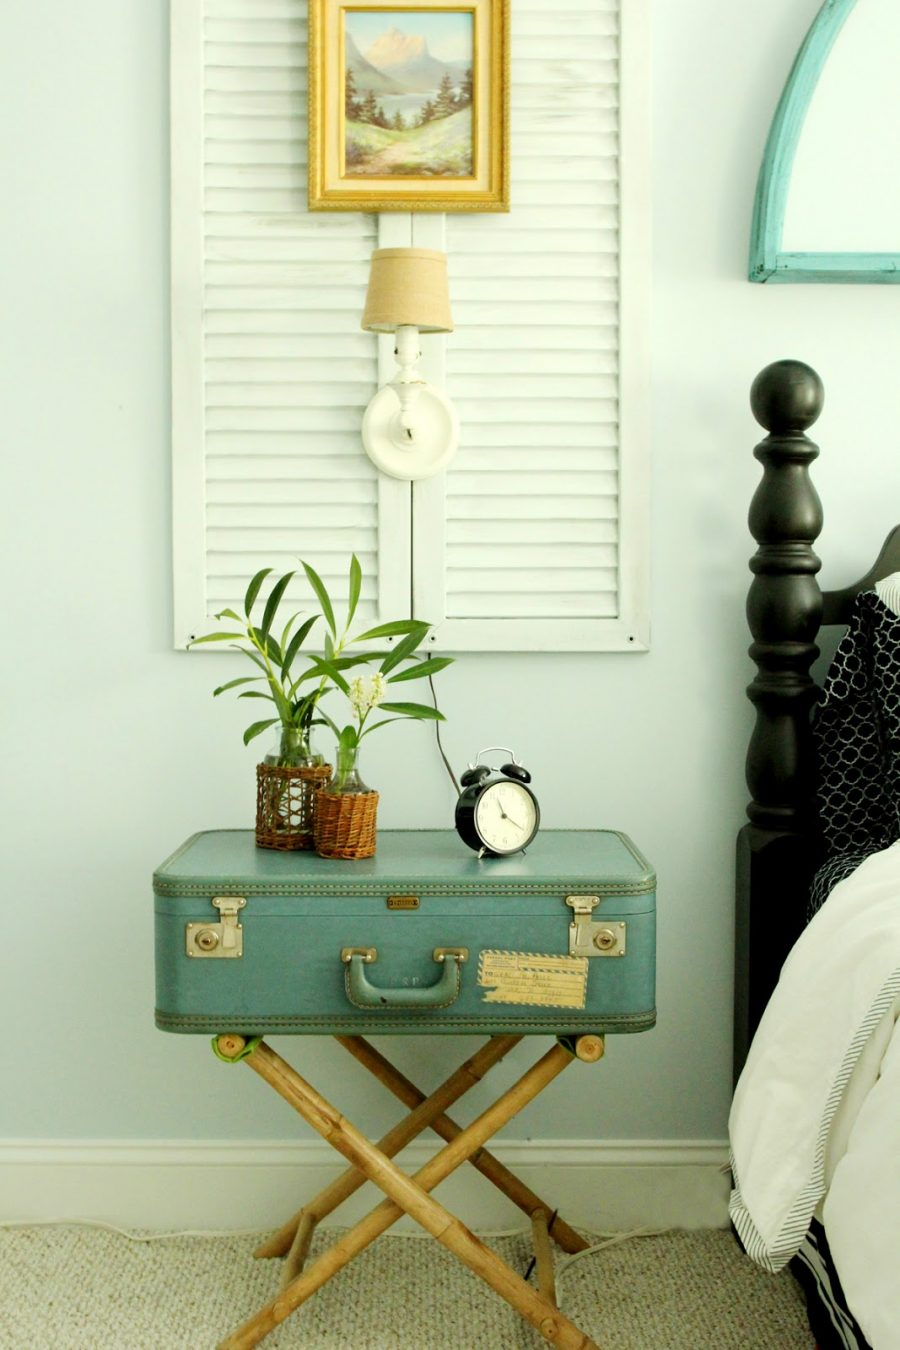 How To Keep Your Vintage Home Decor In Check 3 Vintage Home Decor How To Keep Your Vintage Home Decor In Check How To Keep Your Vintage Home Decor In Check 3